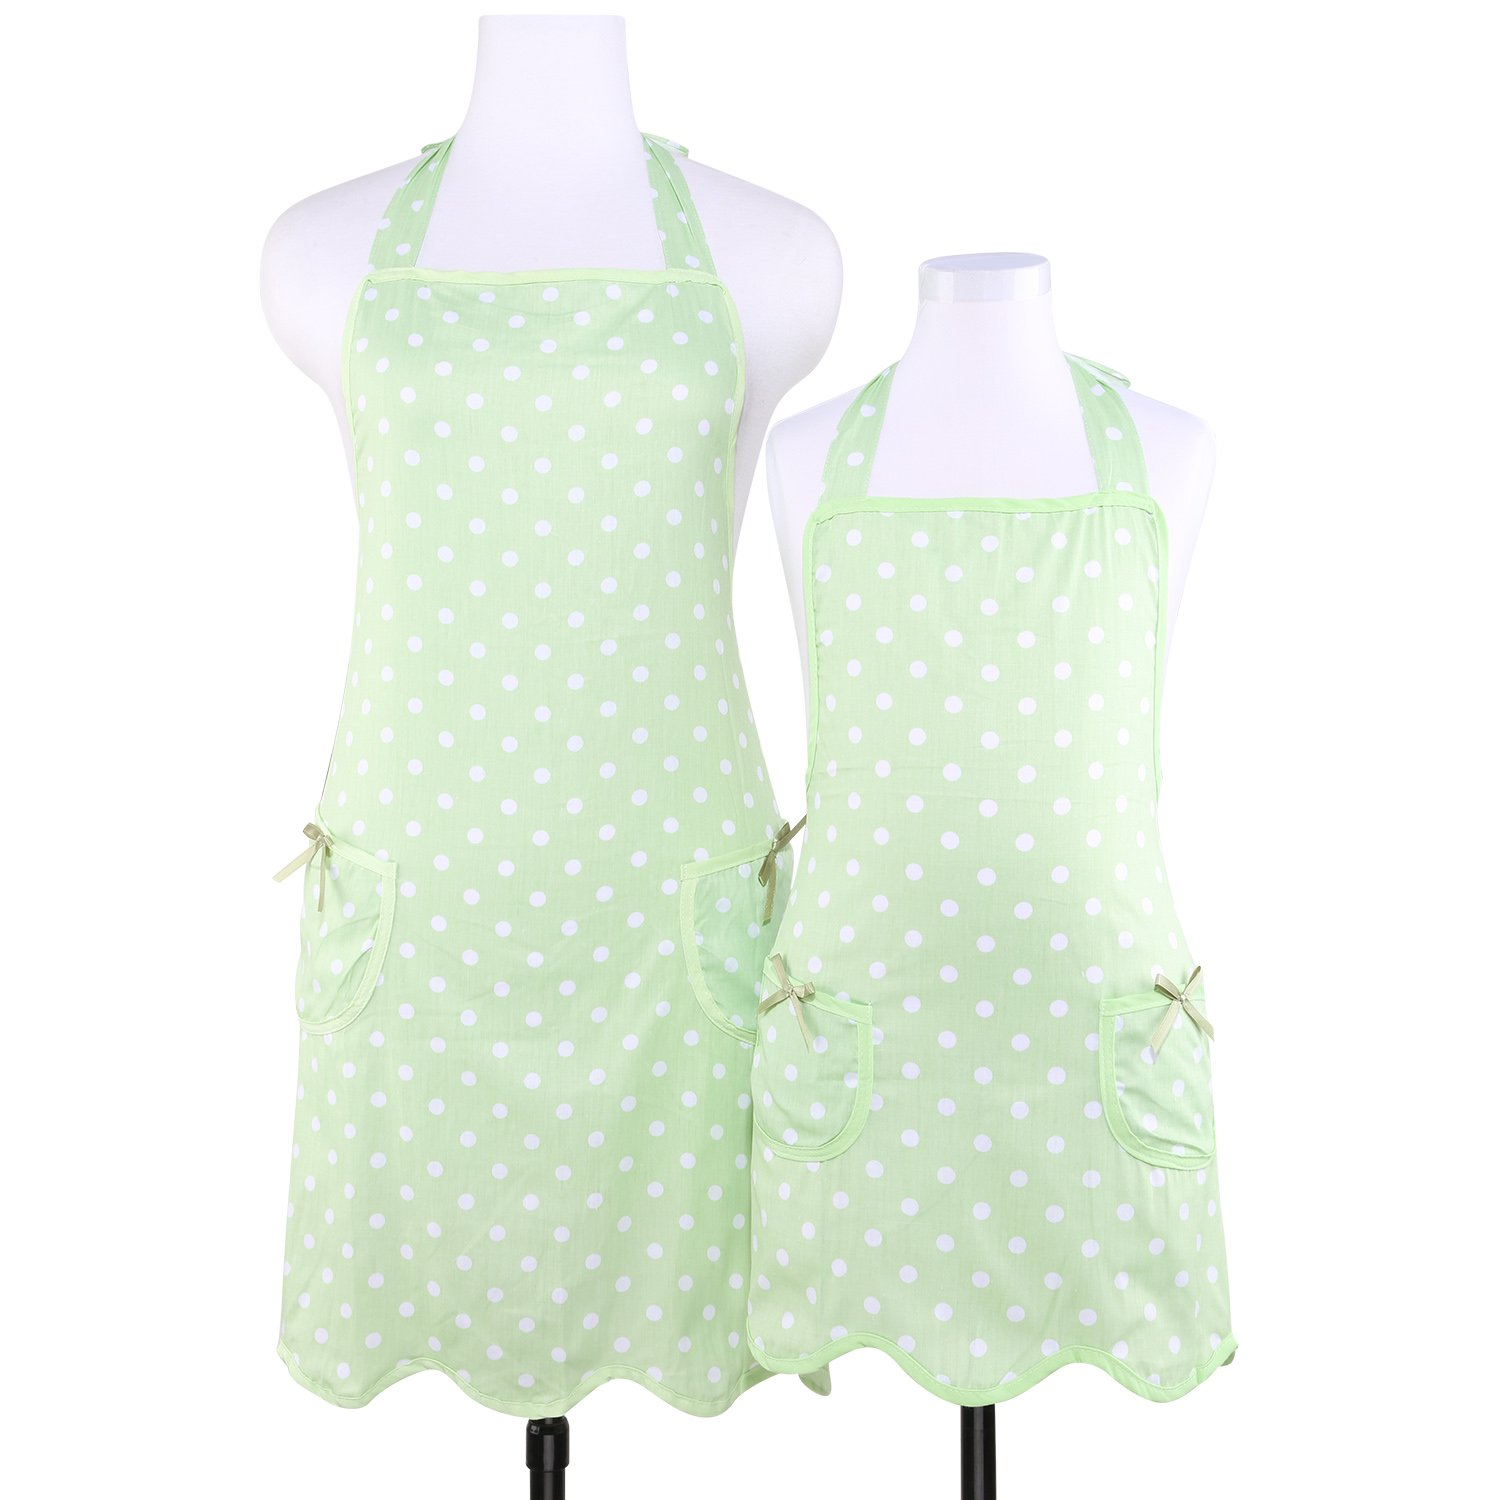 Neoviva Cotton Twill Lightweight Cooking Apron for Women with Pockets, Style Wendy, Polka Dots Green XinDaSheng(HangZhou) Arts Co. LTD